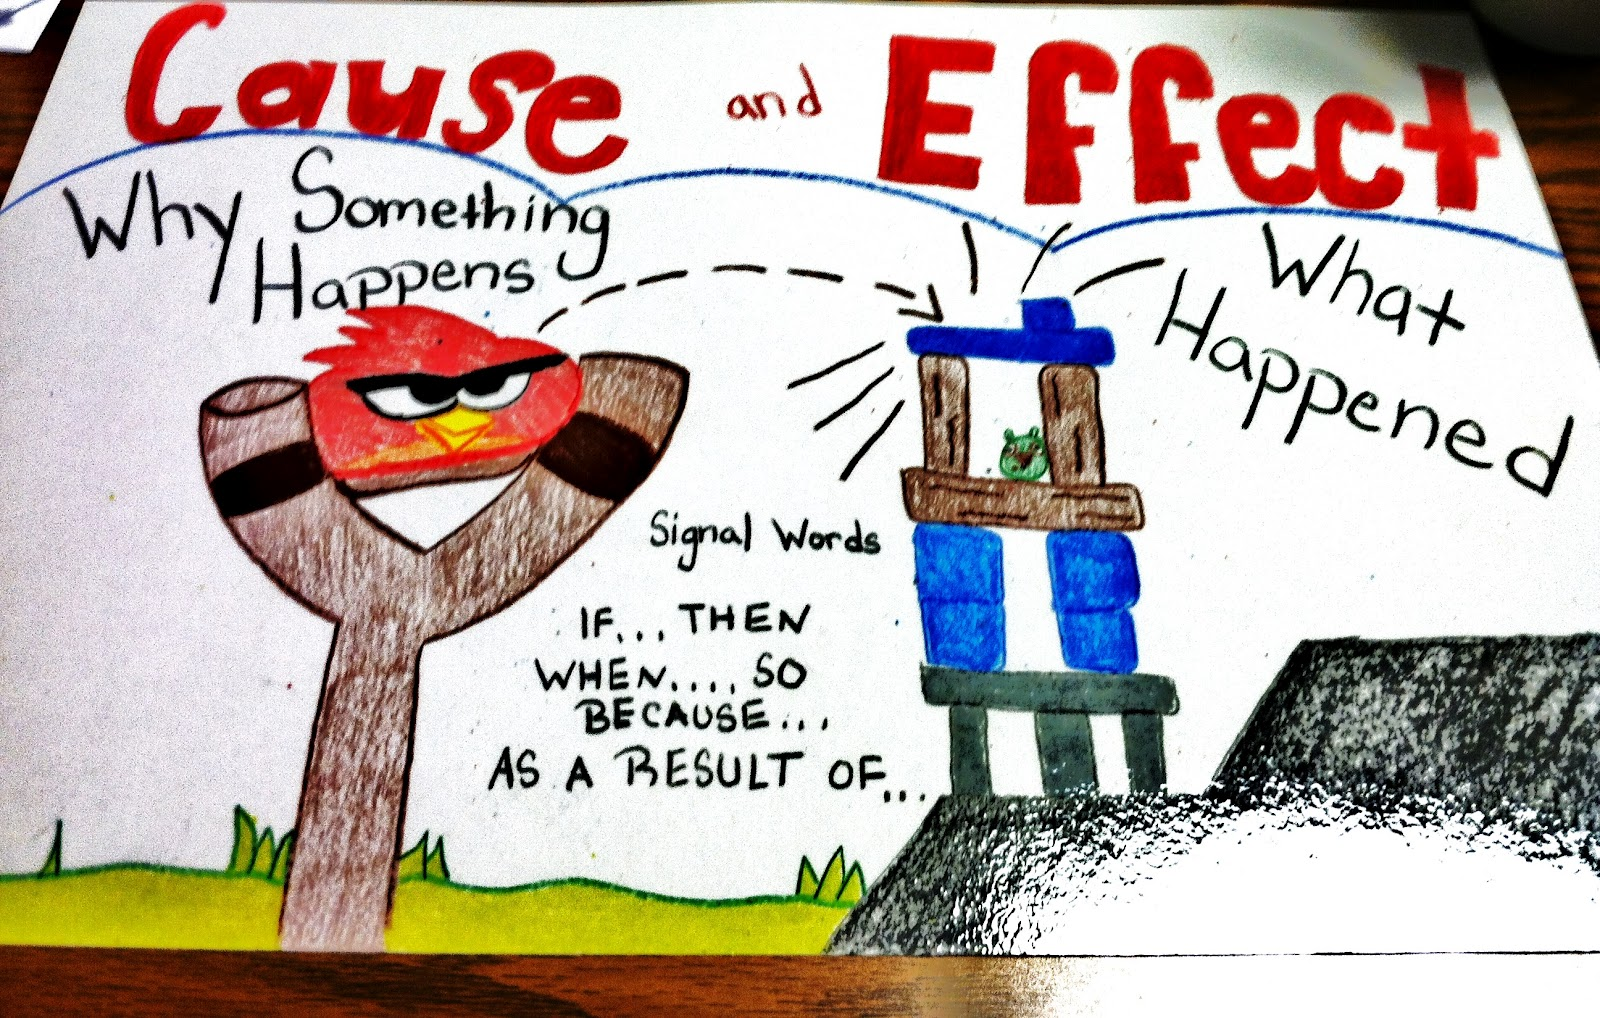 cause and effect relationship pictures teens